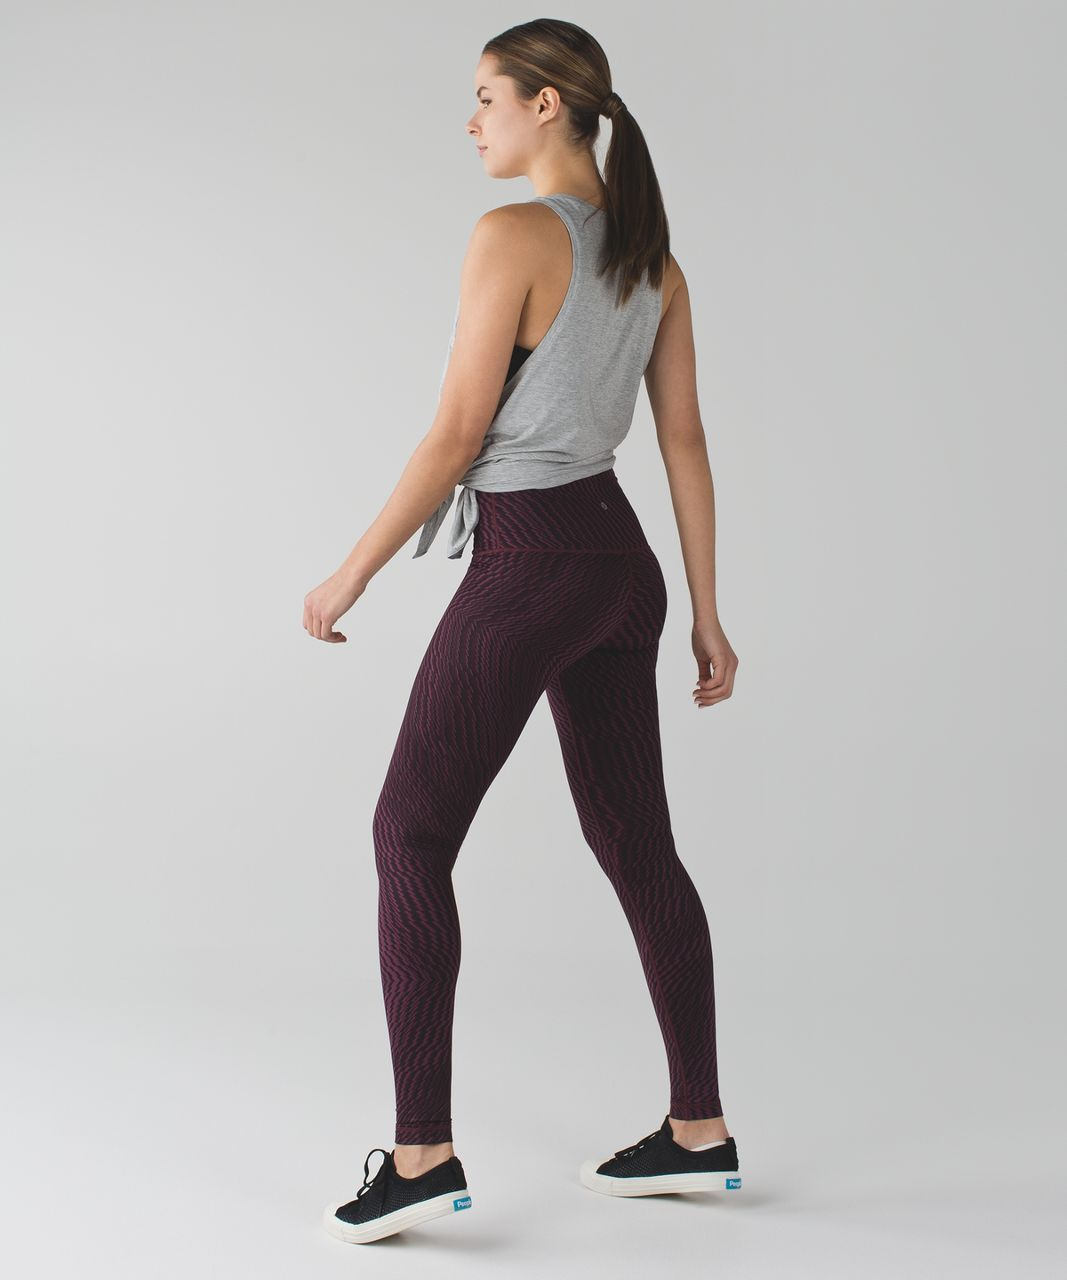 Lululemon Wunder Under Pant (Hi-Rise) - Shifted Horizon Red Grape Black